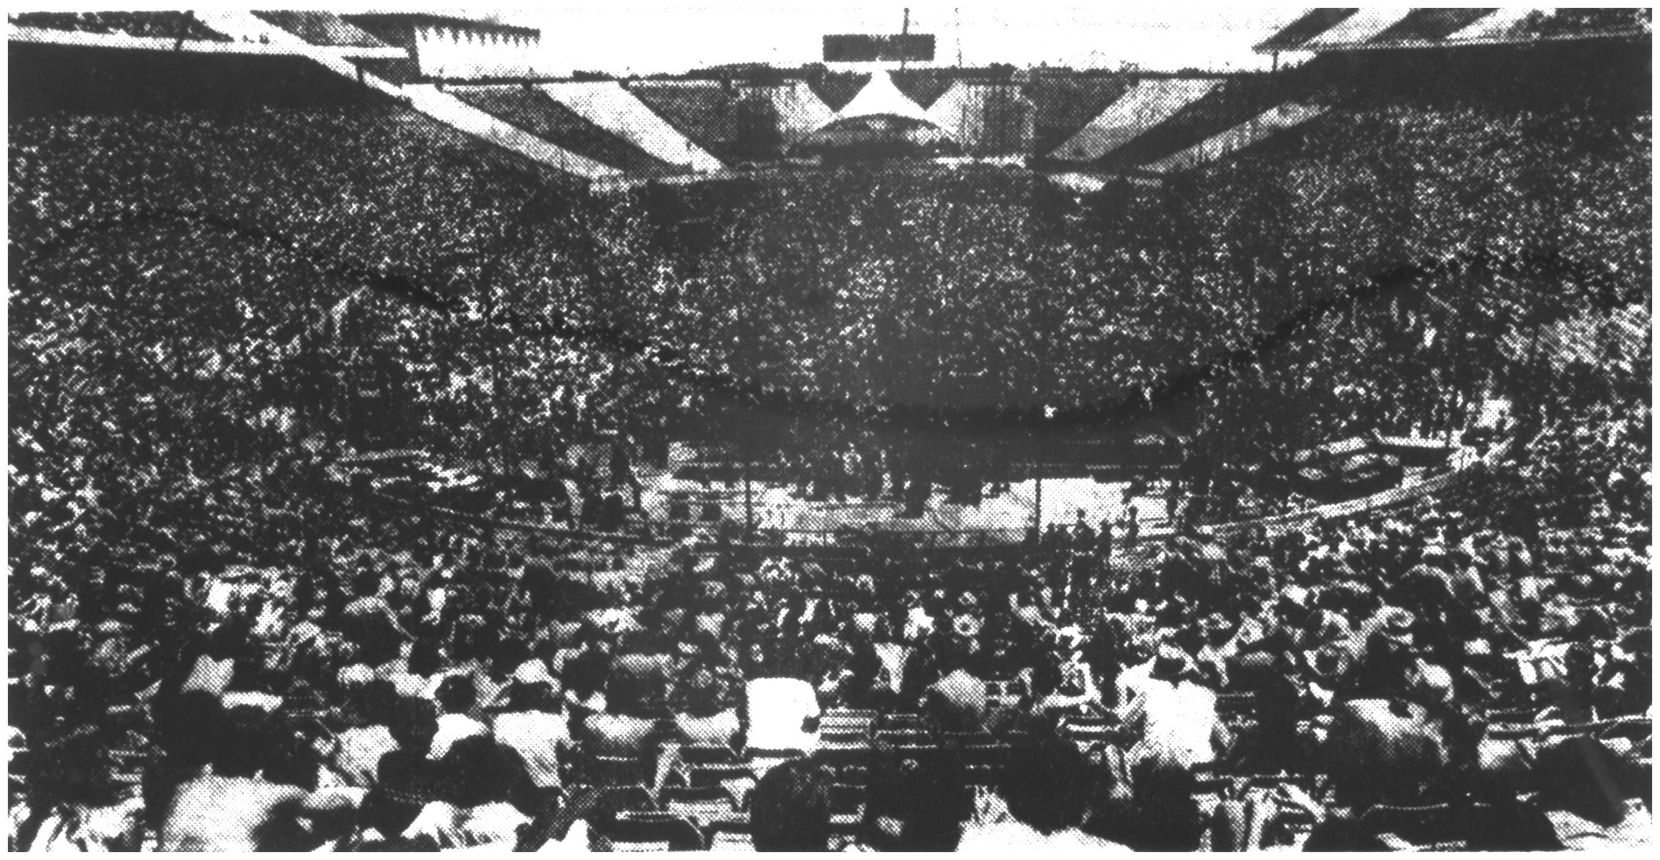 More than 50,000 Rolling Stones fans packed the Cotton Bowl in Dallas despite brutal heat on July 6, 1975.